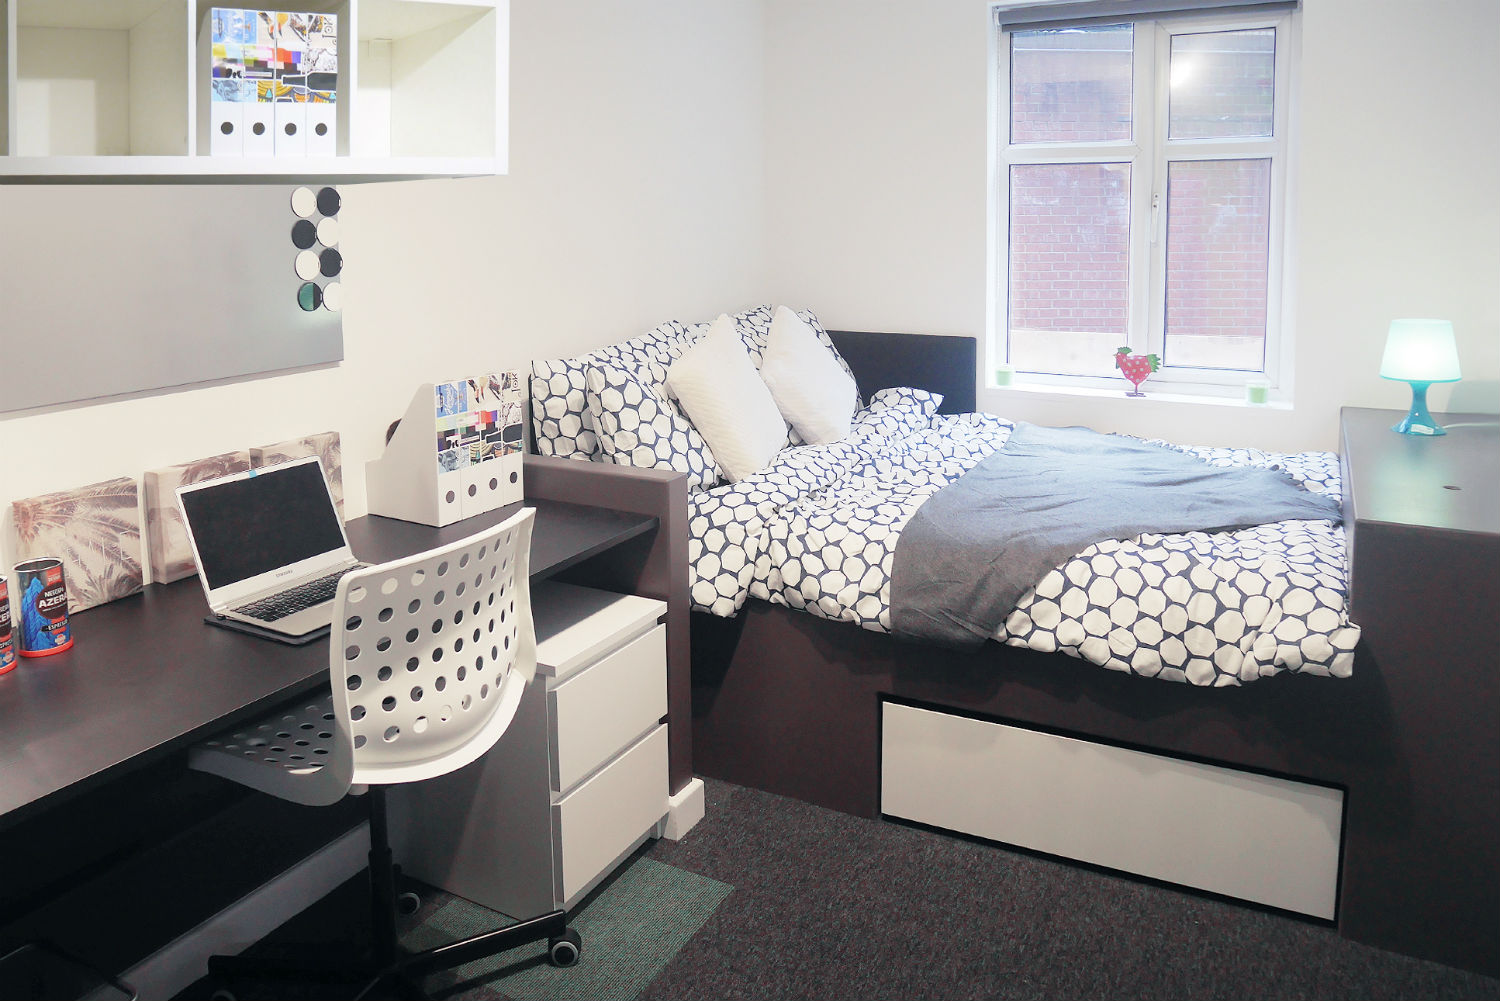 Photo of a bedroom at York House in Leicester